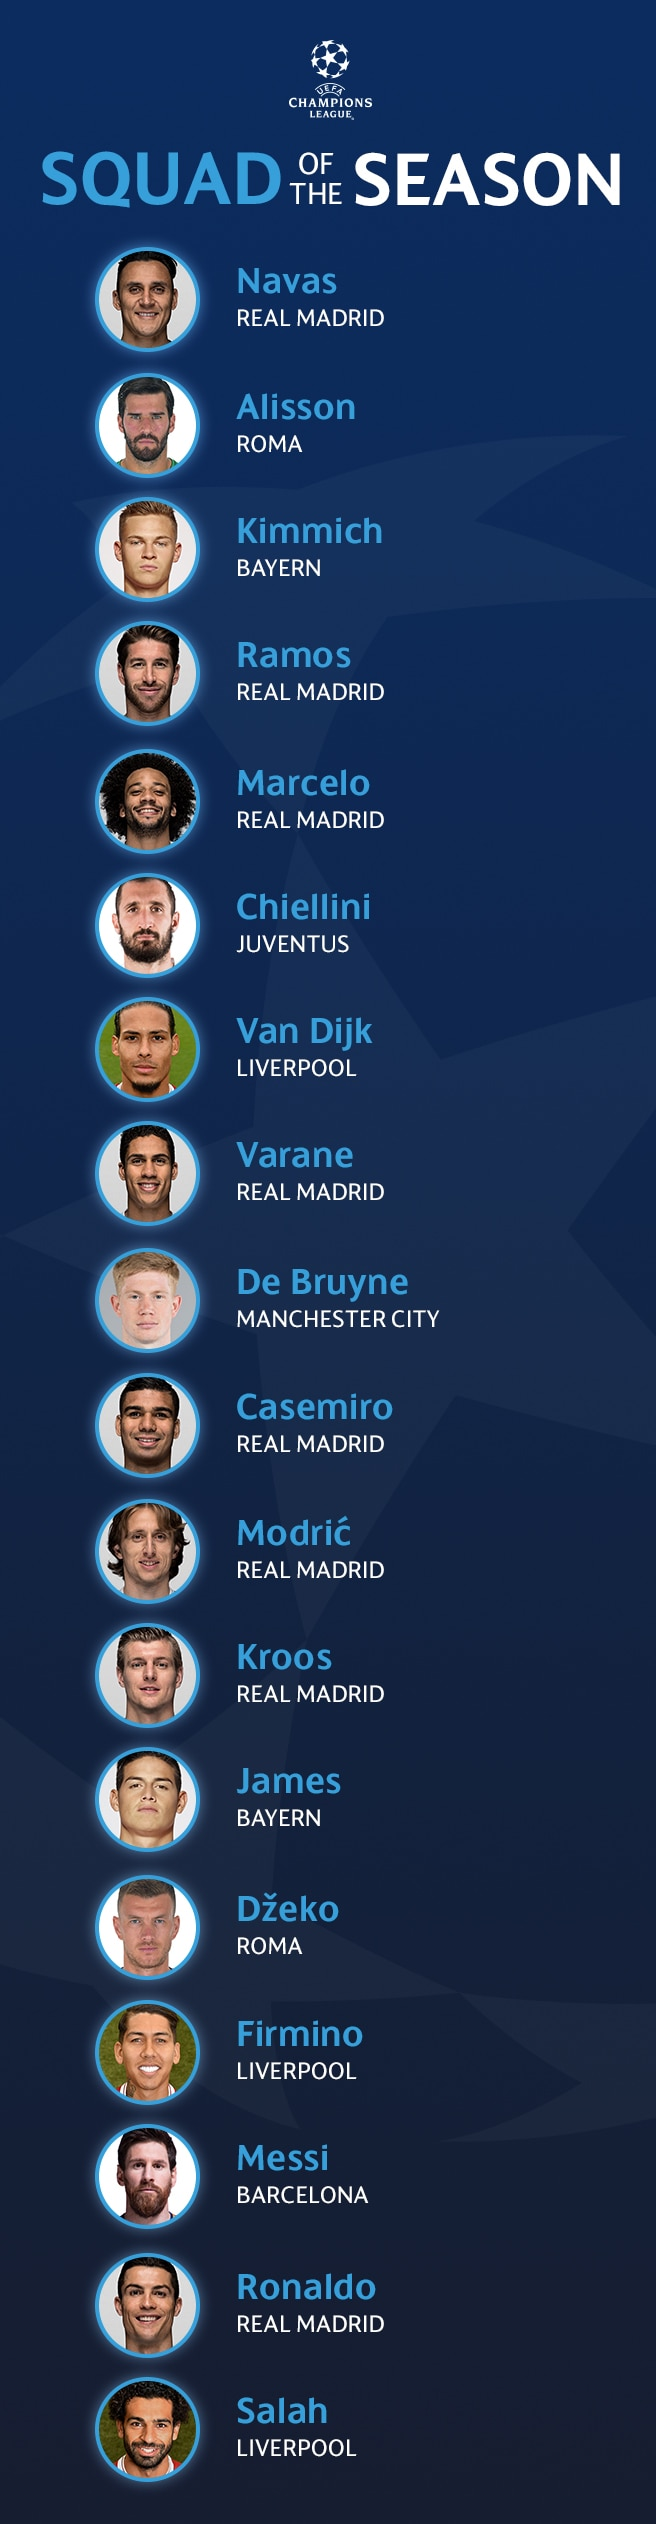 Uefa Champions League Squad Of The Season Uefa Champions League